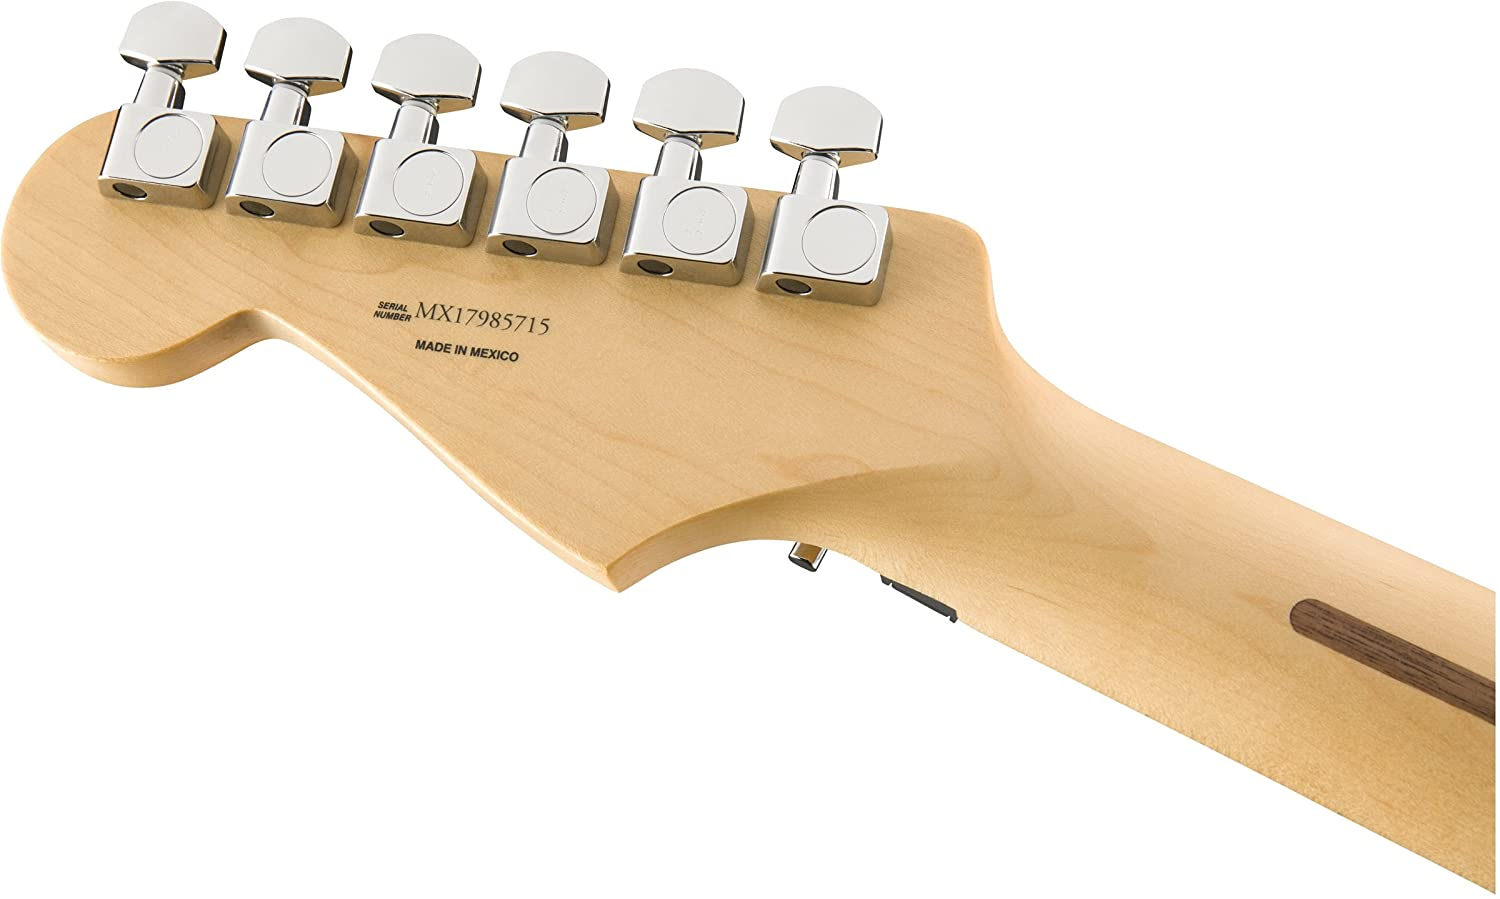 Amazon.com: Fender Player Stratocaster Electric HSS Guitar - Floyd Rose - Maple Fingerboard - Tidepool: Musical Instruments